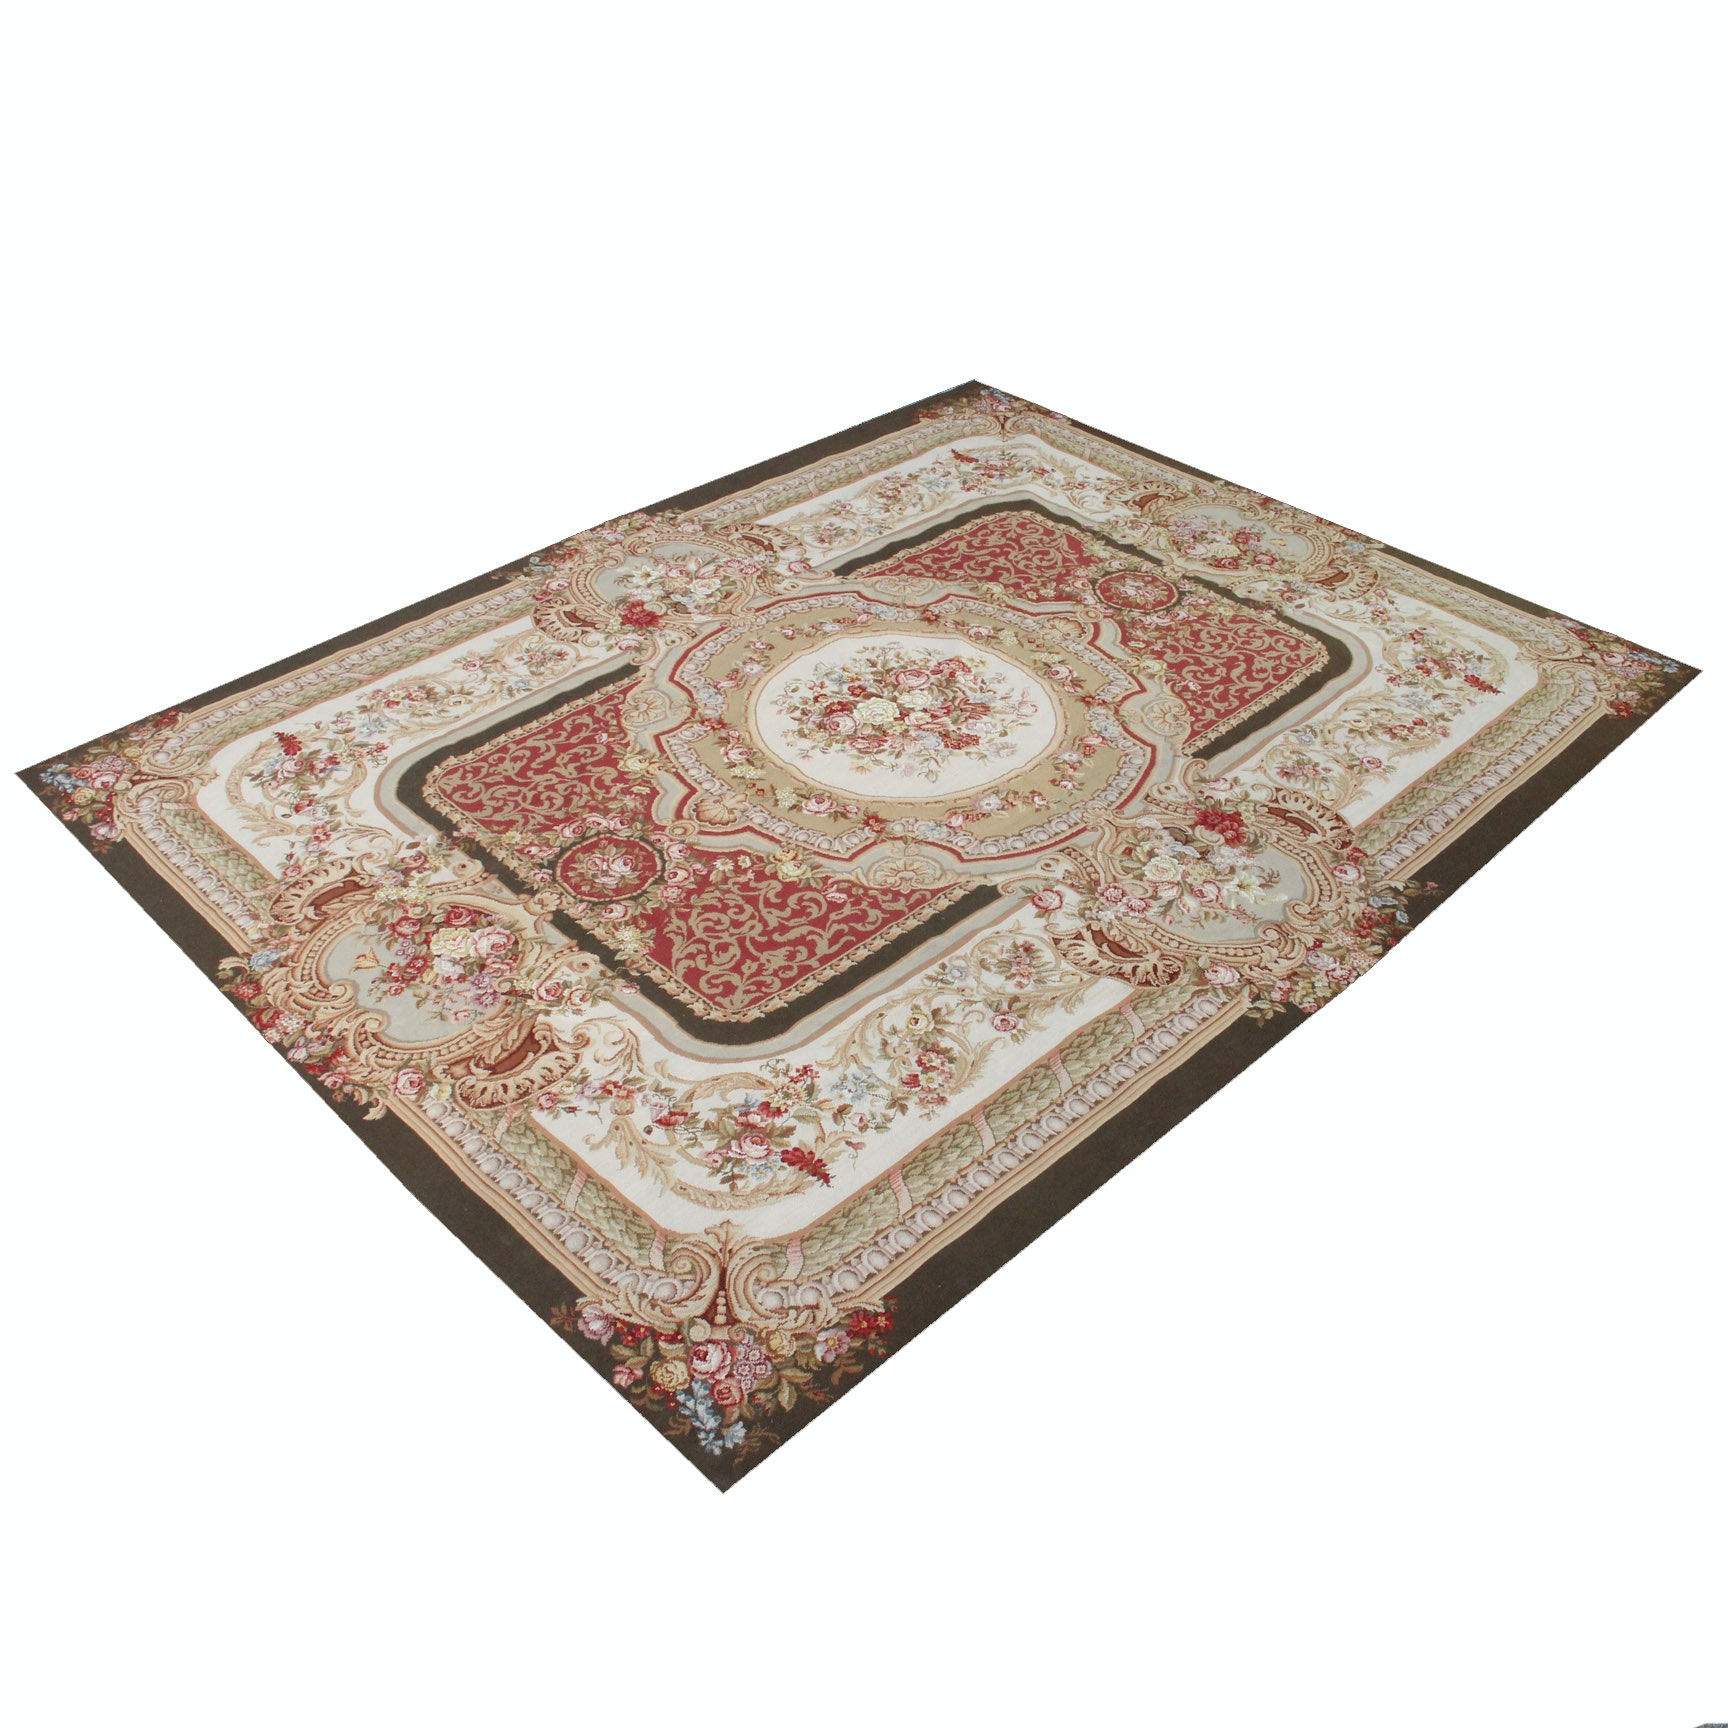 Large Needlepoint Savonnerie-Style Area Rug